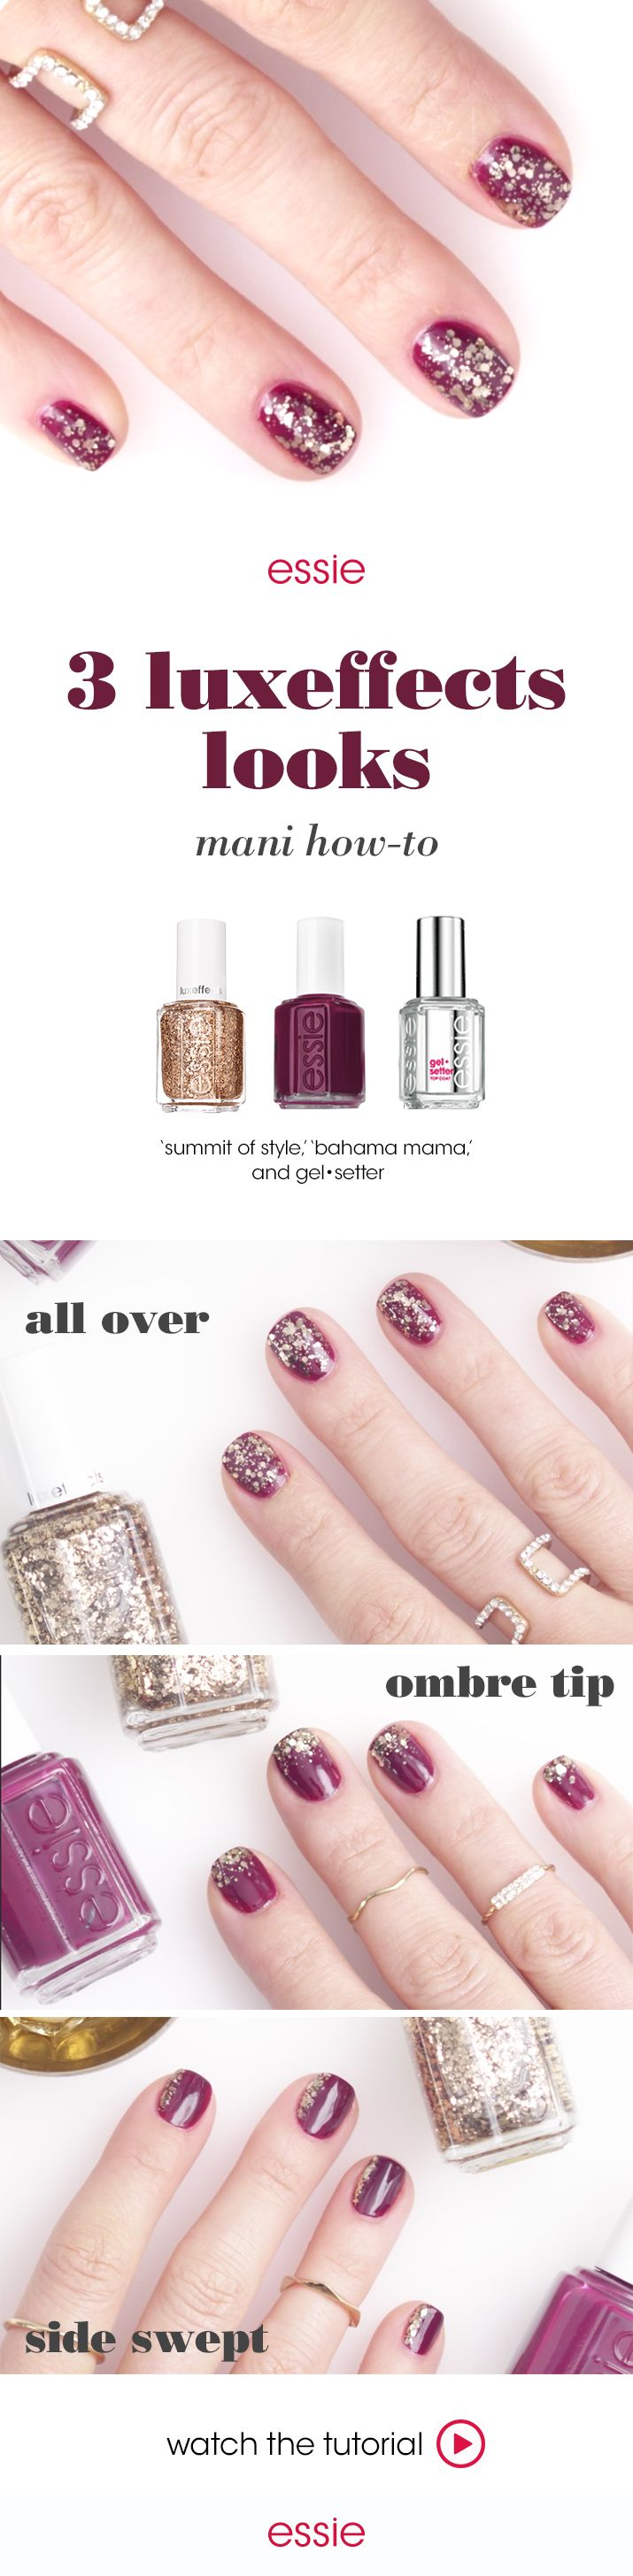 Add glitter and glamour to your manis. For these three different yet equally charming looks, you can apply a base coat of the rich deep plum 'bahama mama' and top it with sparking bronze 'summit of style' in 3 different and charming ways — i. create an all over look by applying a coat of summit of style, ii. define the tips to create an ombré tip or iii. apply to one side of the nail to create a side swept look. Whichever way you choose to shimmer, you'll dazzle away this holiday.